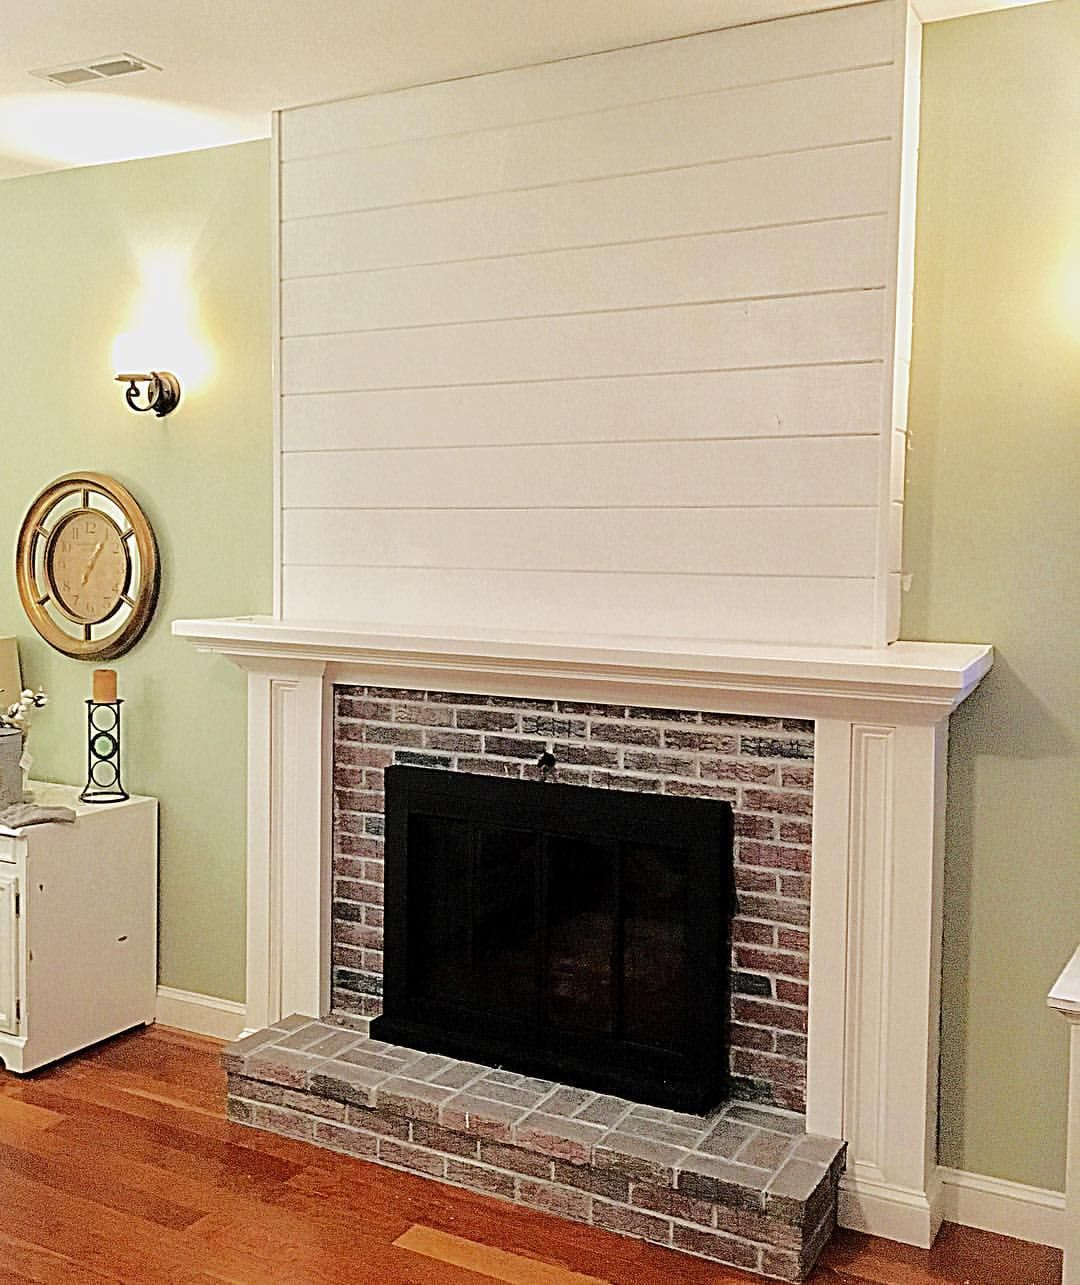 Whitewashed Bricks Shiplap Over Brick Fireplace See This Instagram Photo By Mybeachyfarmhouse Freestanding Fireplace Small Basement Remodel Brick Fireplace